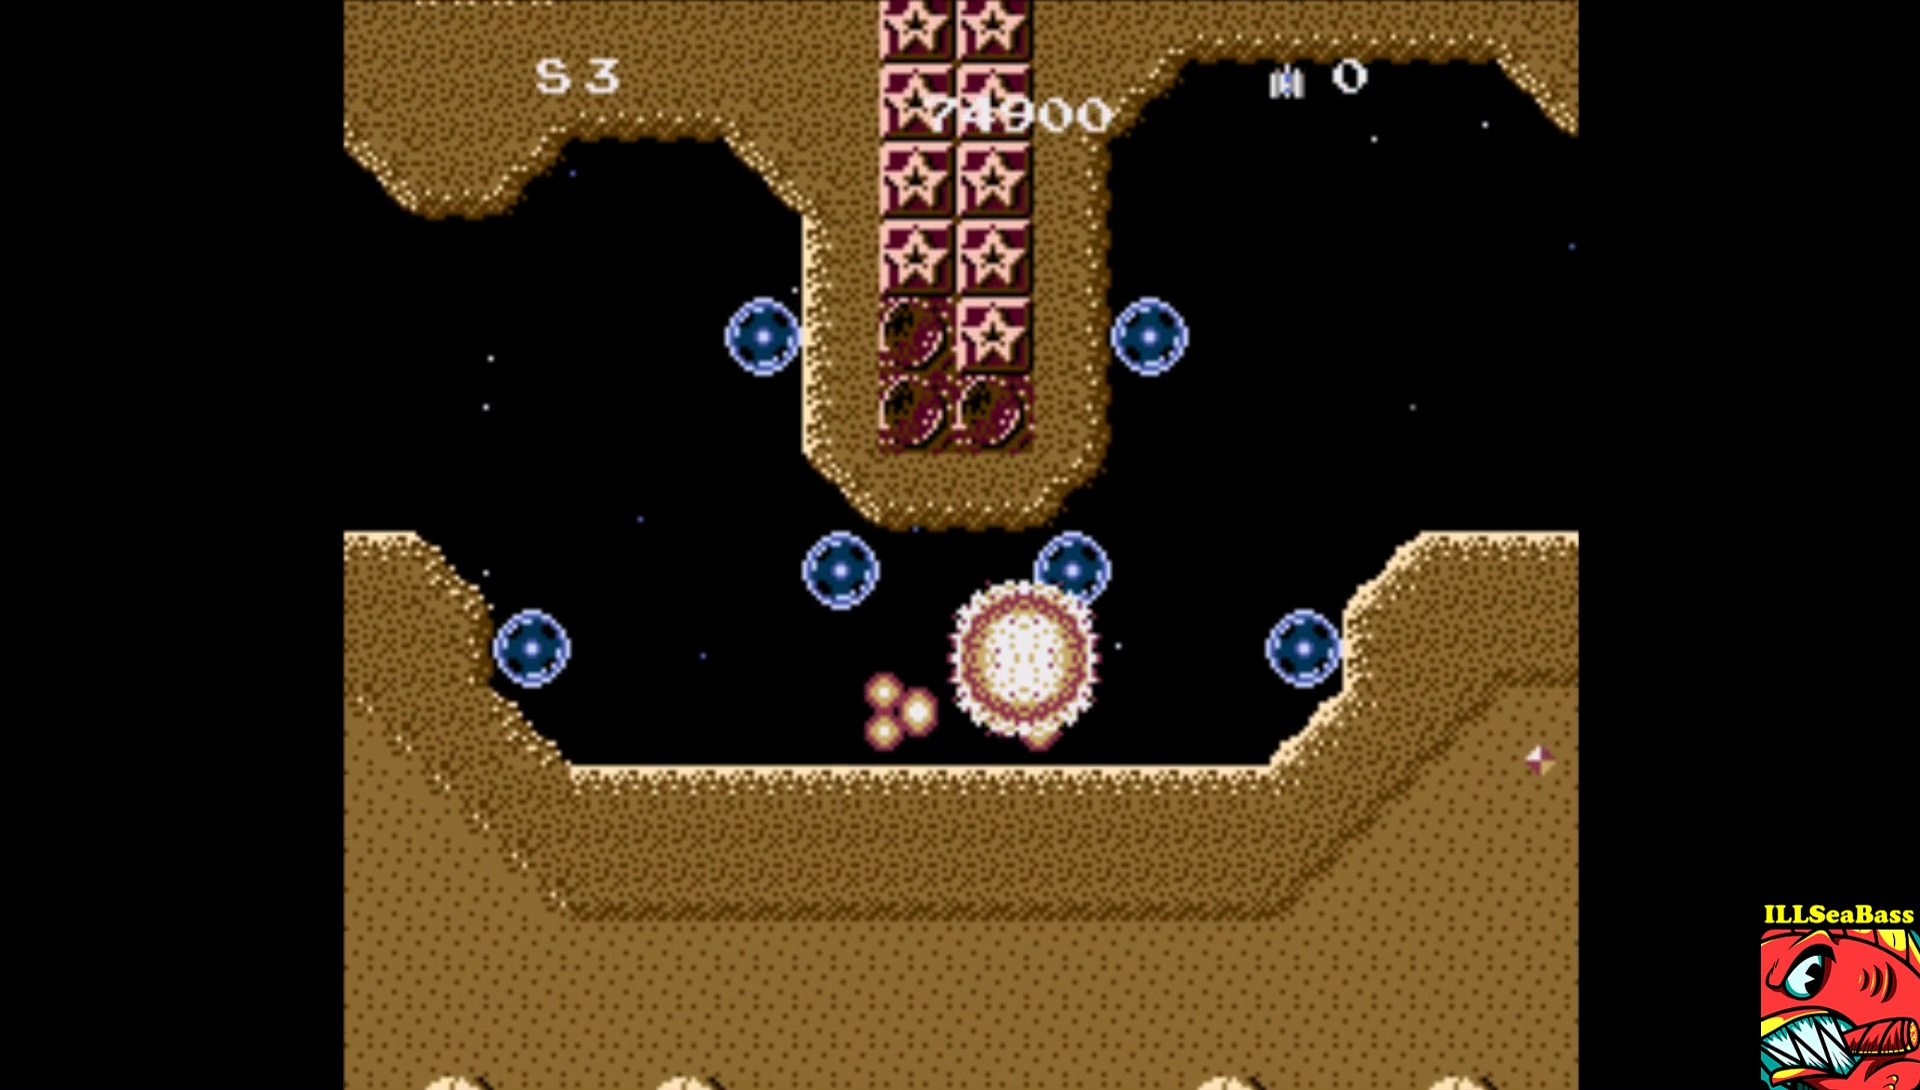 ILLSeaBass: Caravan Shooting Collection [Star Soldier] (SNES/Super Famicom Emulated) 74,900 points on 2017-06-19 22:03:02